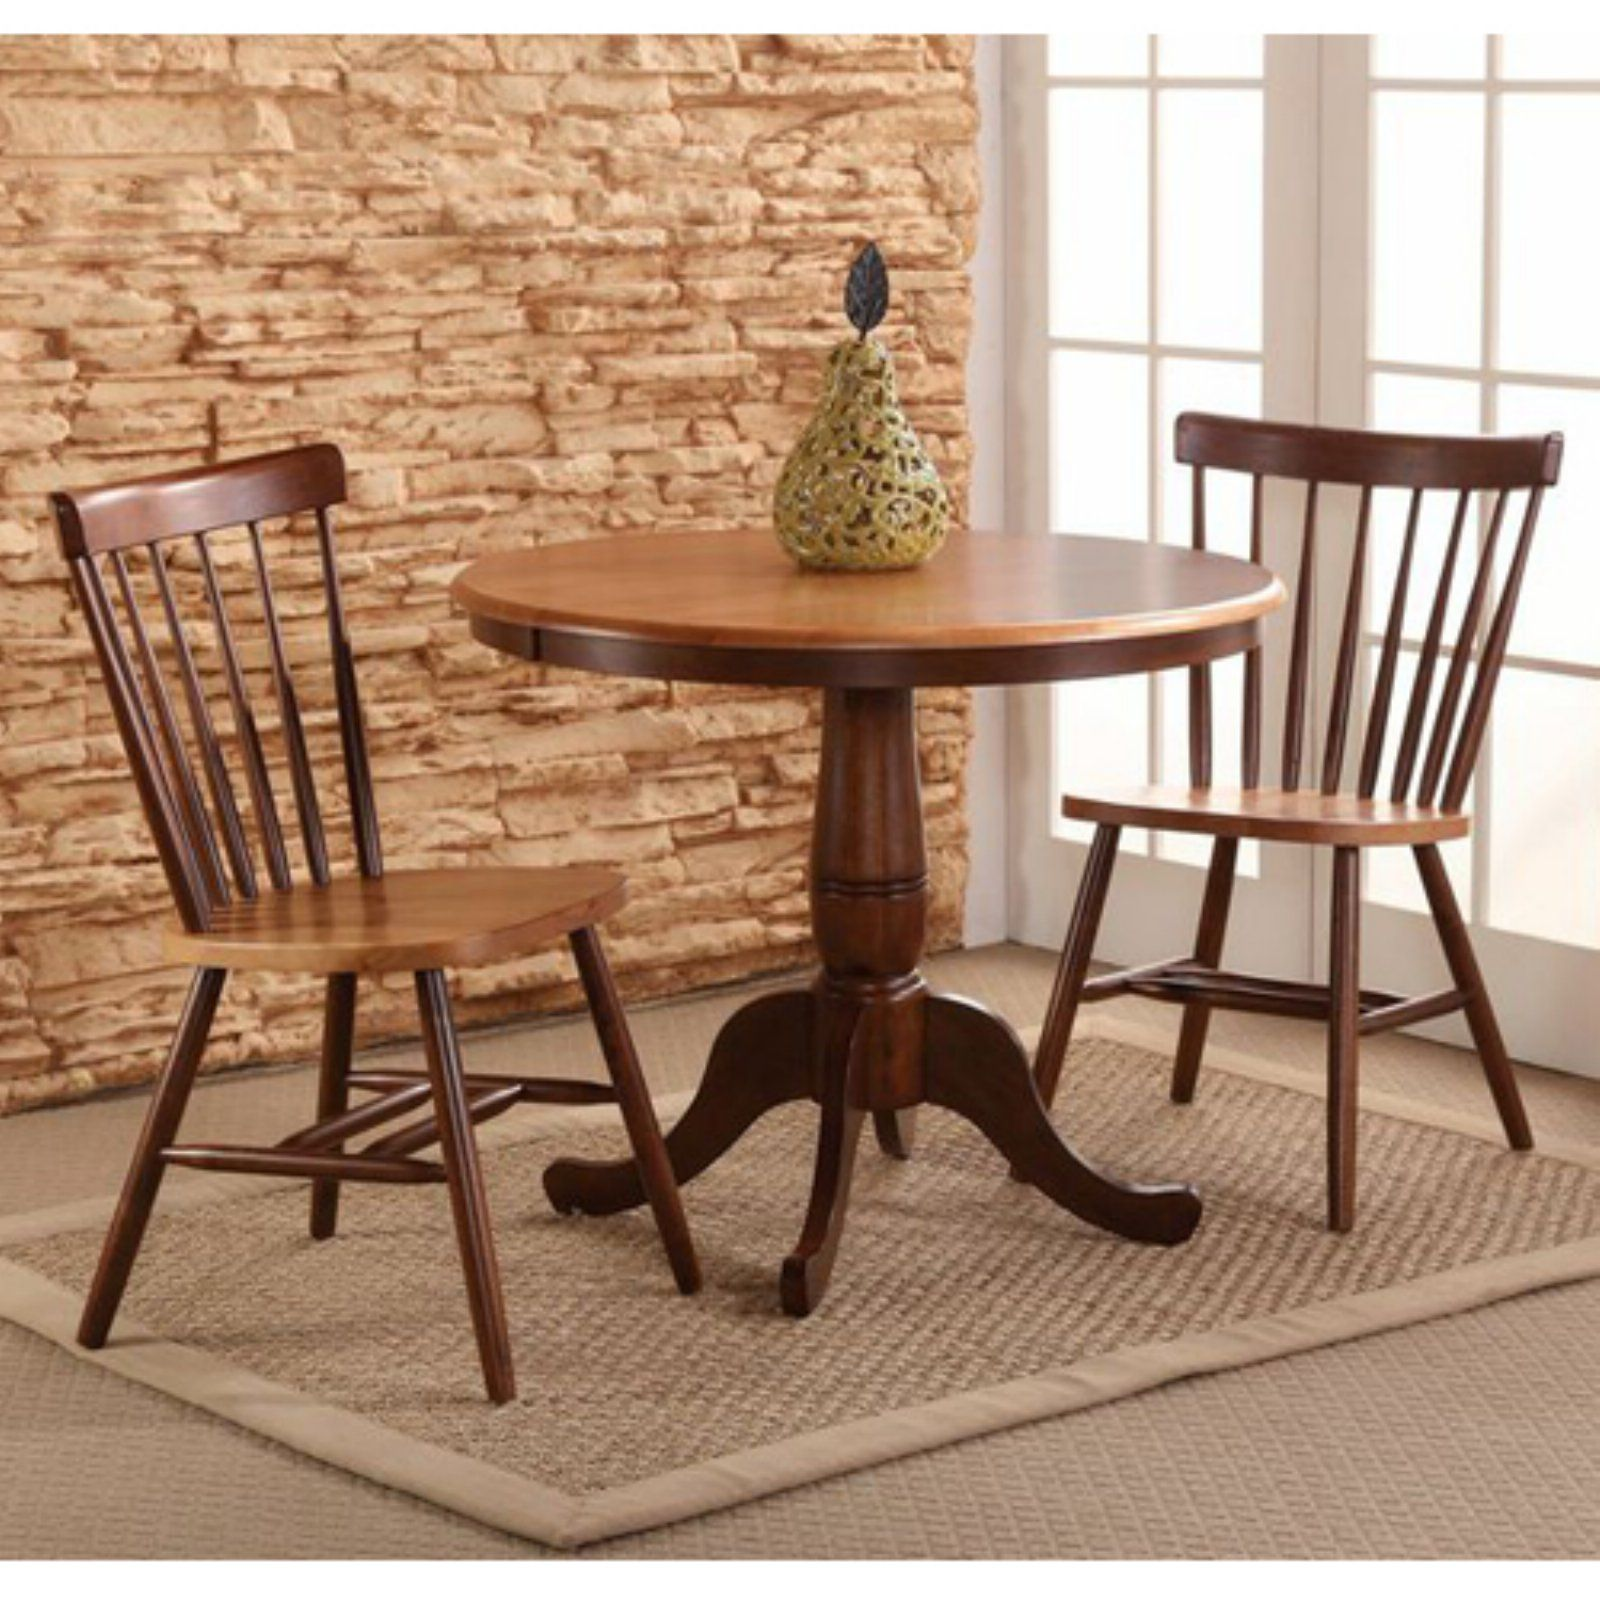 International Concepts Piperton 36 In Round Pedestal Dining Table Set With 2 Copenhagen Chairs Round Pedestal Dining Table Dining Table Round Pedestal Dining